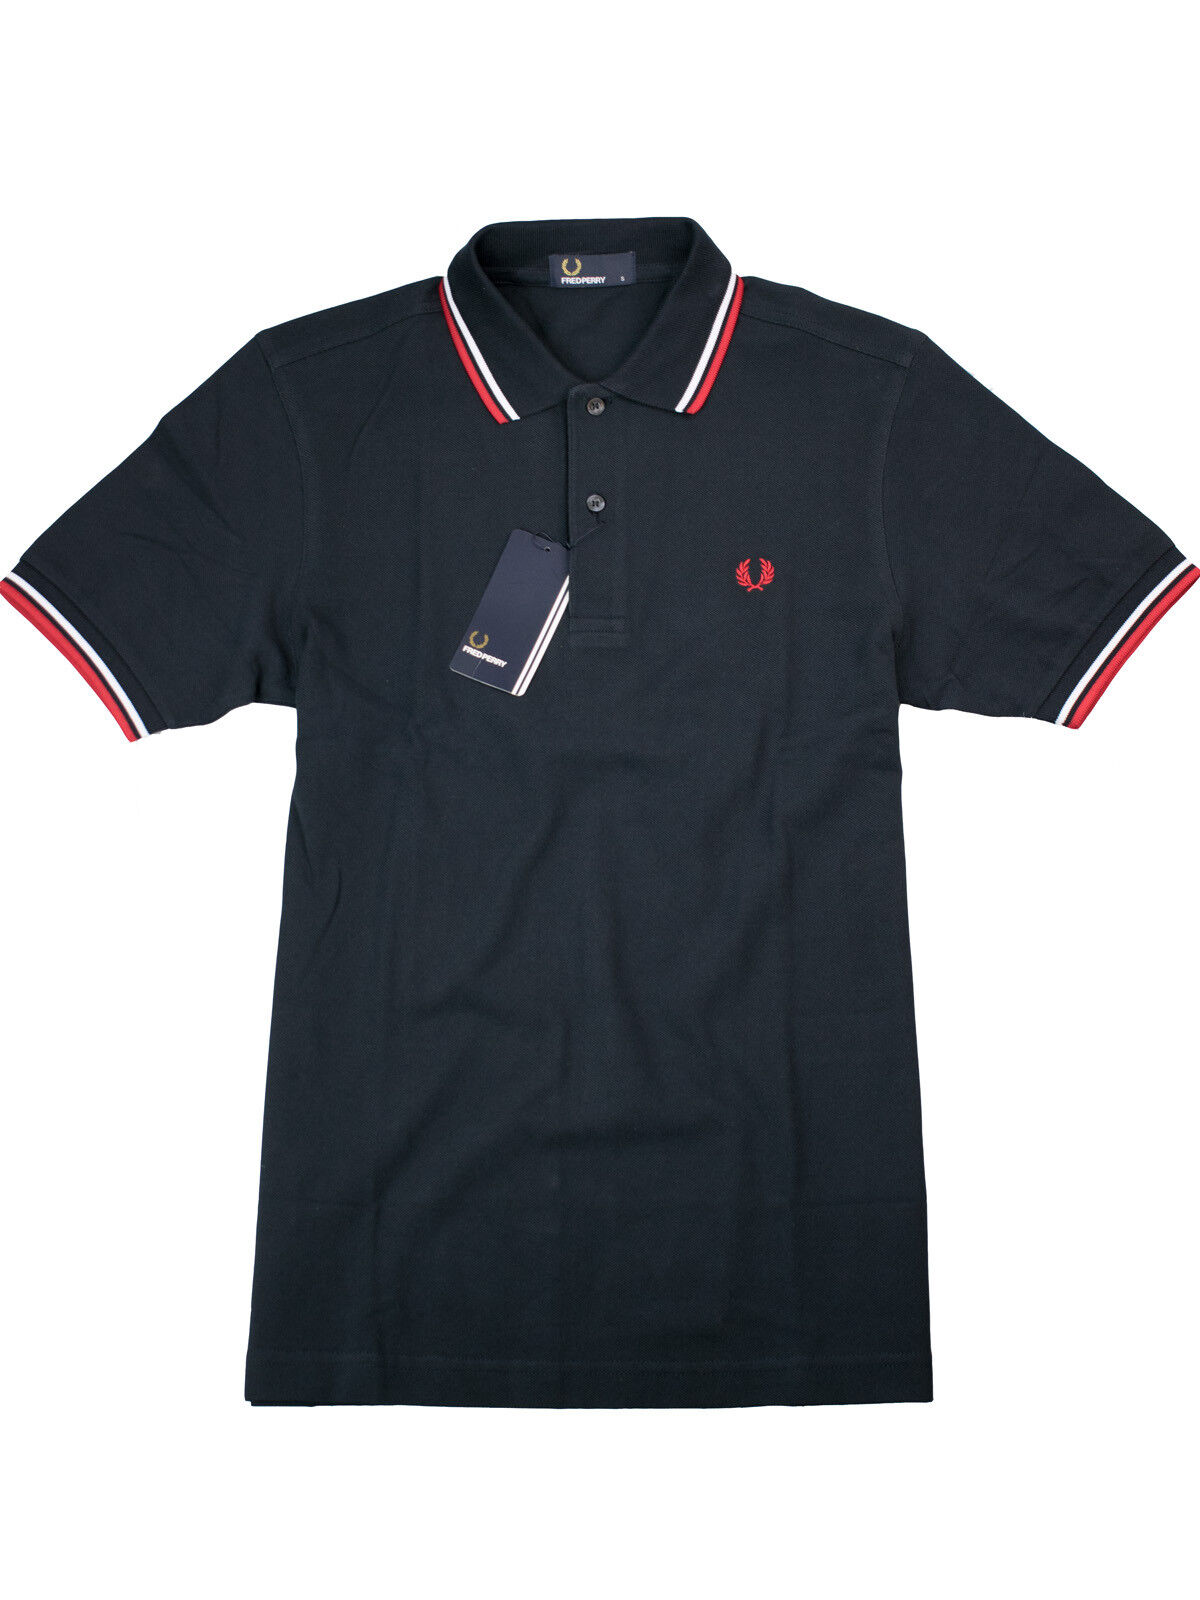 FROT Perry Polo Shirt Poloshirt M1200 471 Navy / Rot / Weiß  5400